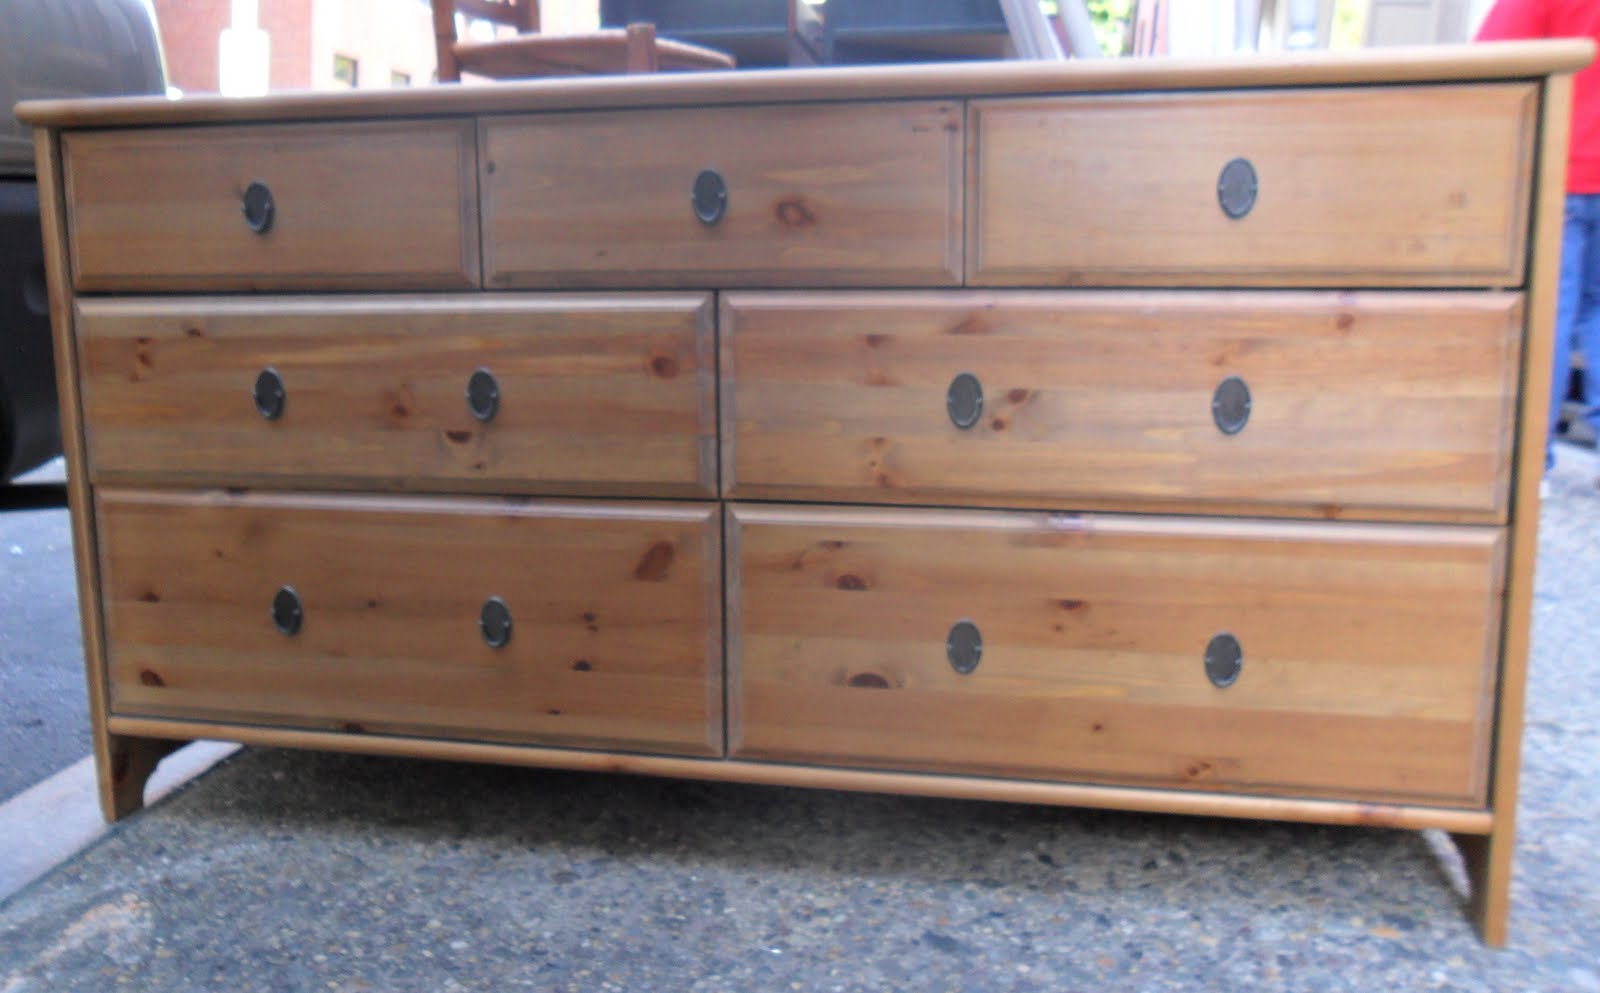 Unique Uhuru Furniture & Collectibles: IKEA Leksvik Dresser SOLD WU59